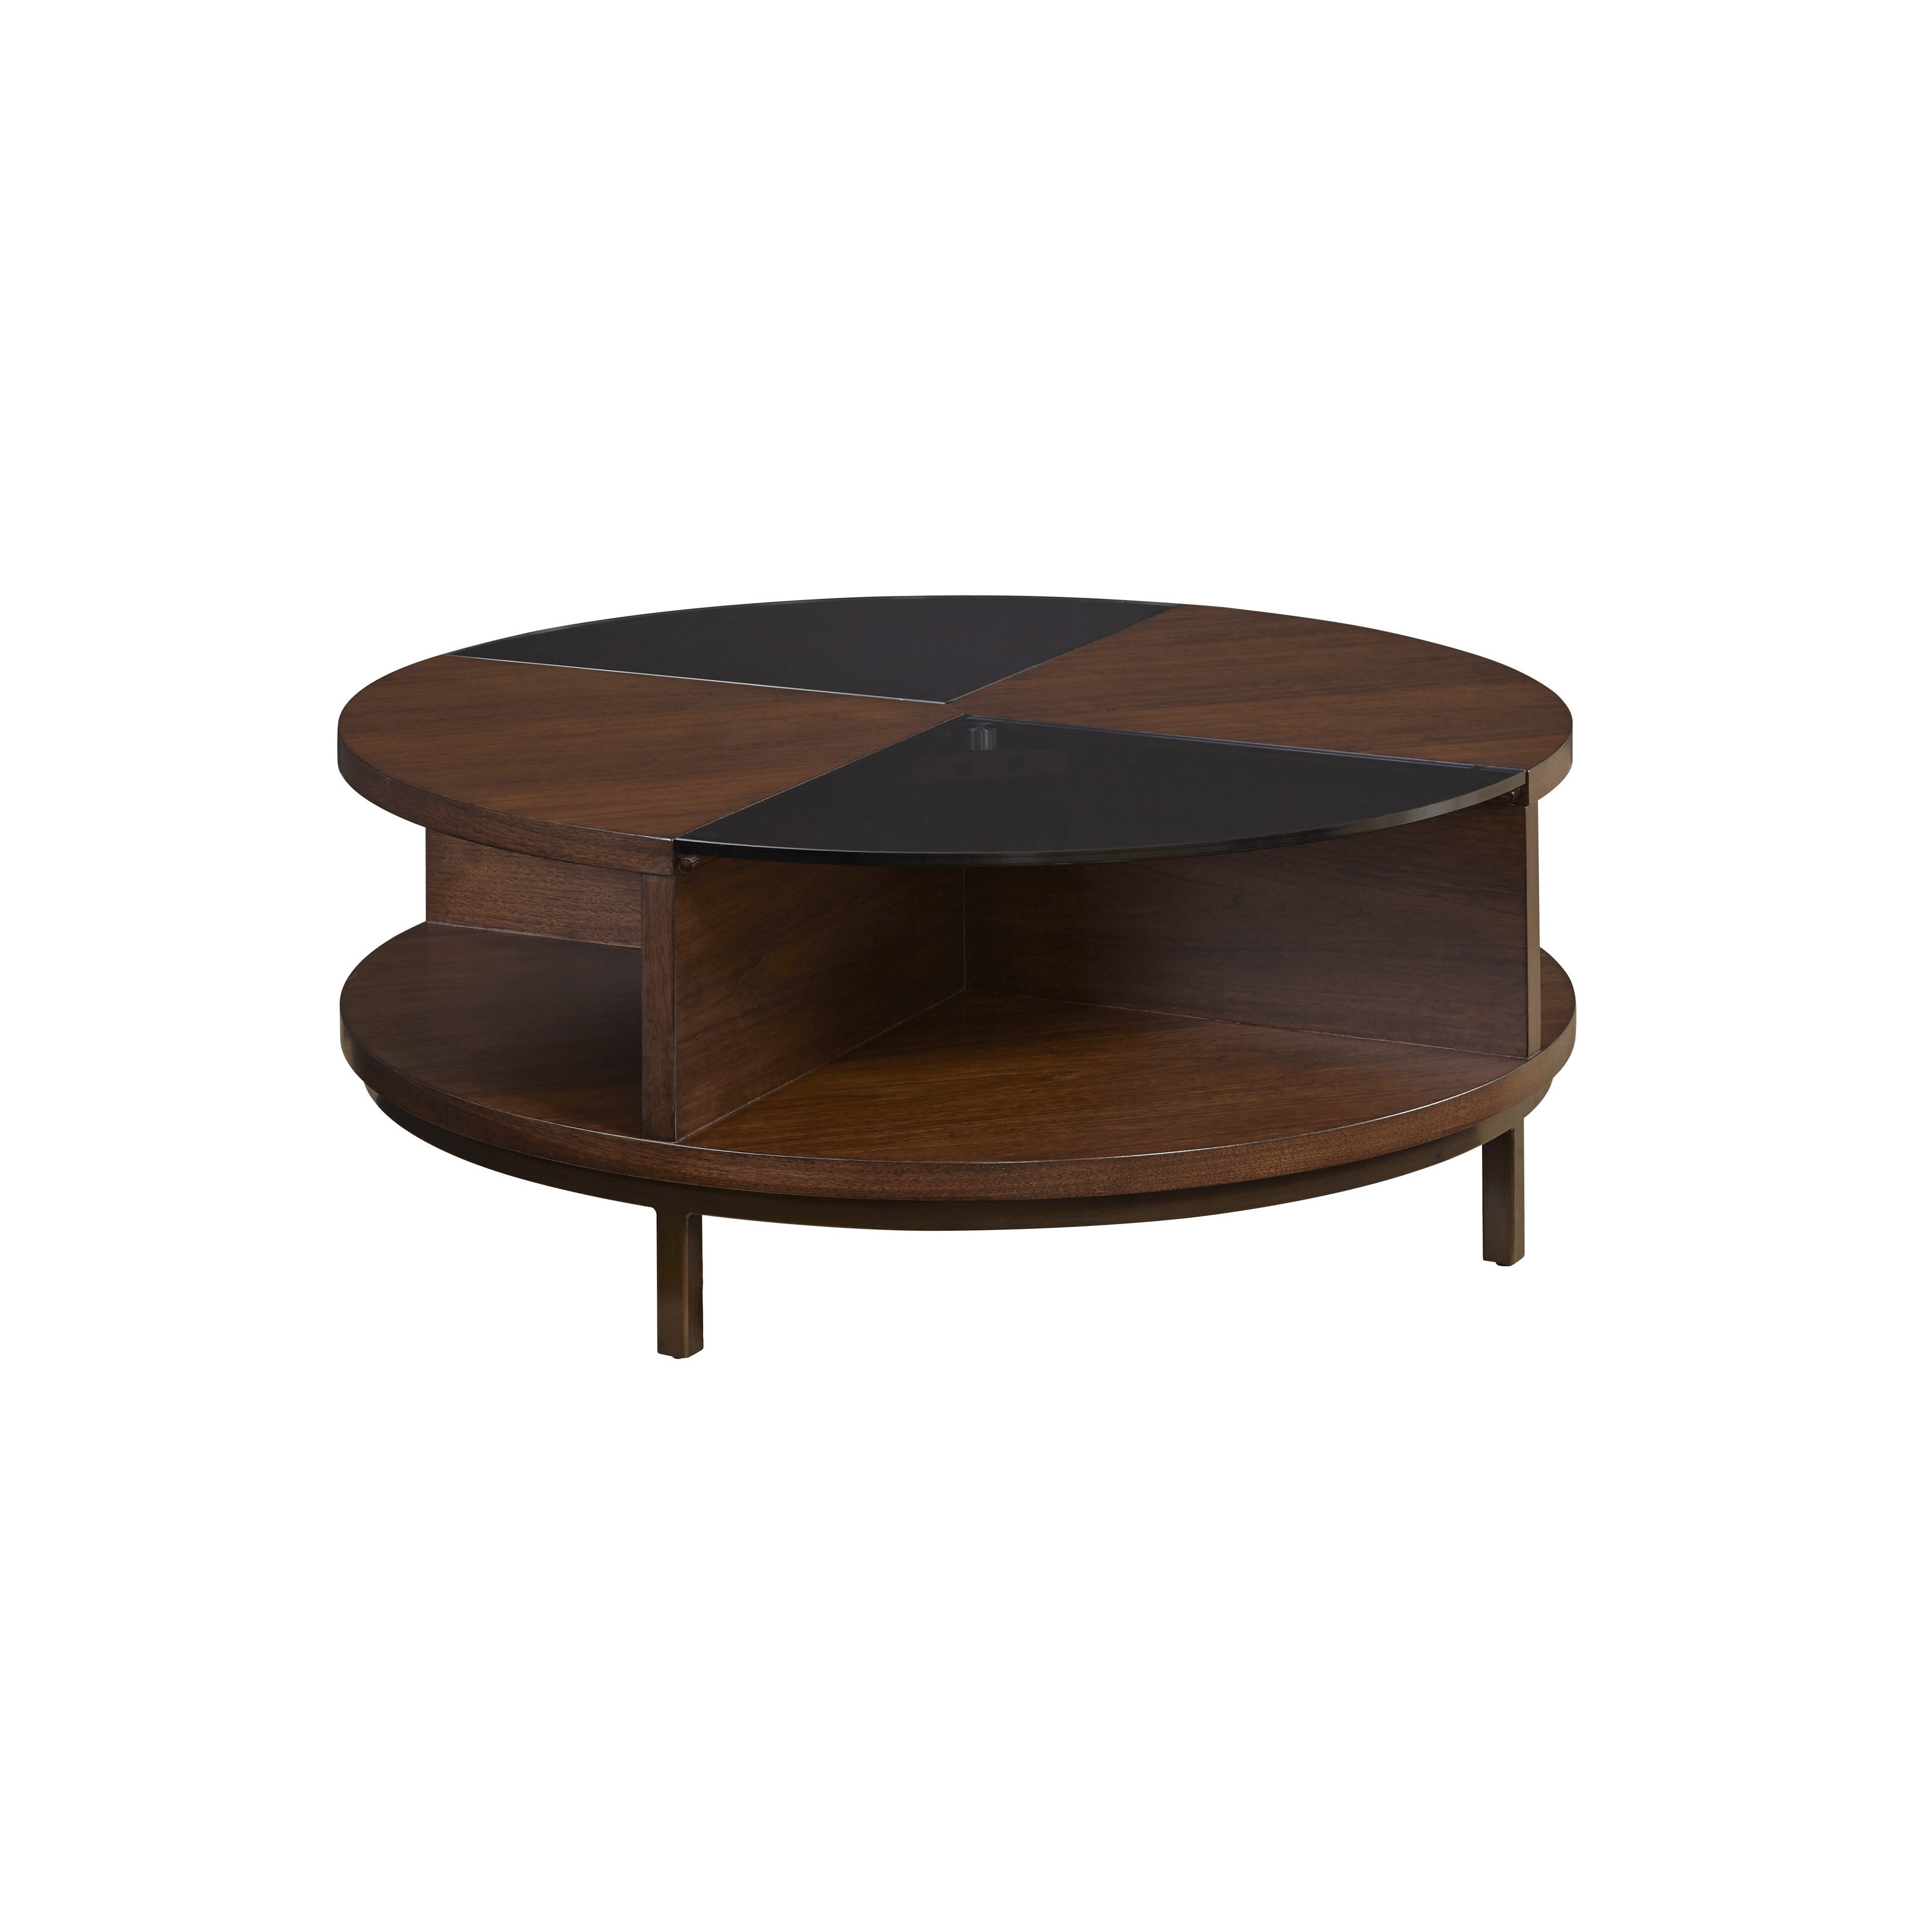 Contemporary Modern Kelsey Two Tone Round Coffee Table   Free Shipping  Today   Overstock   20843179